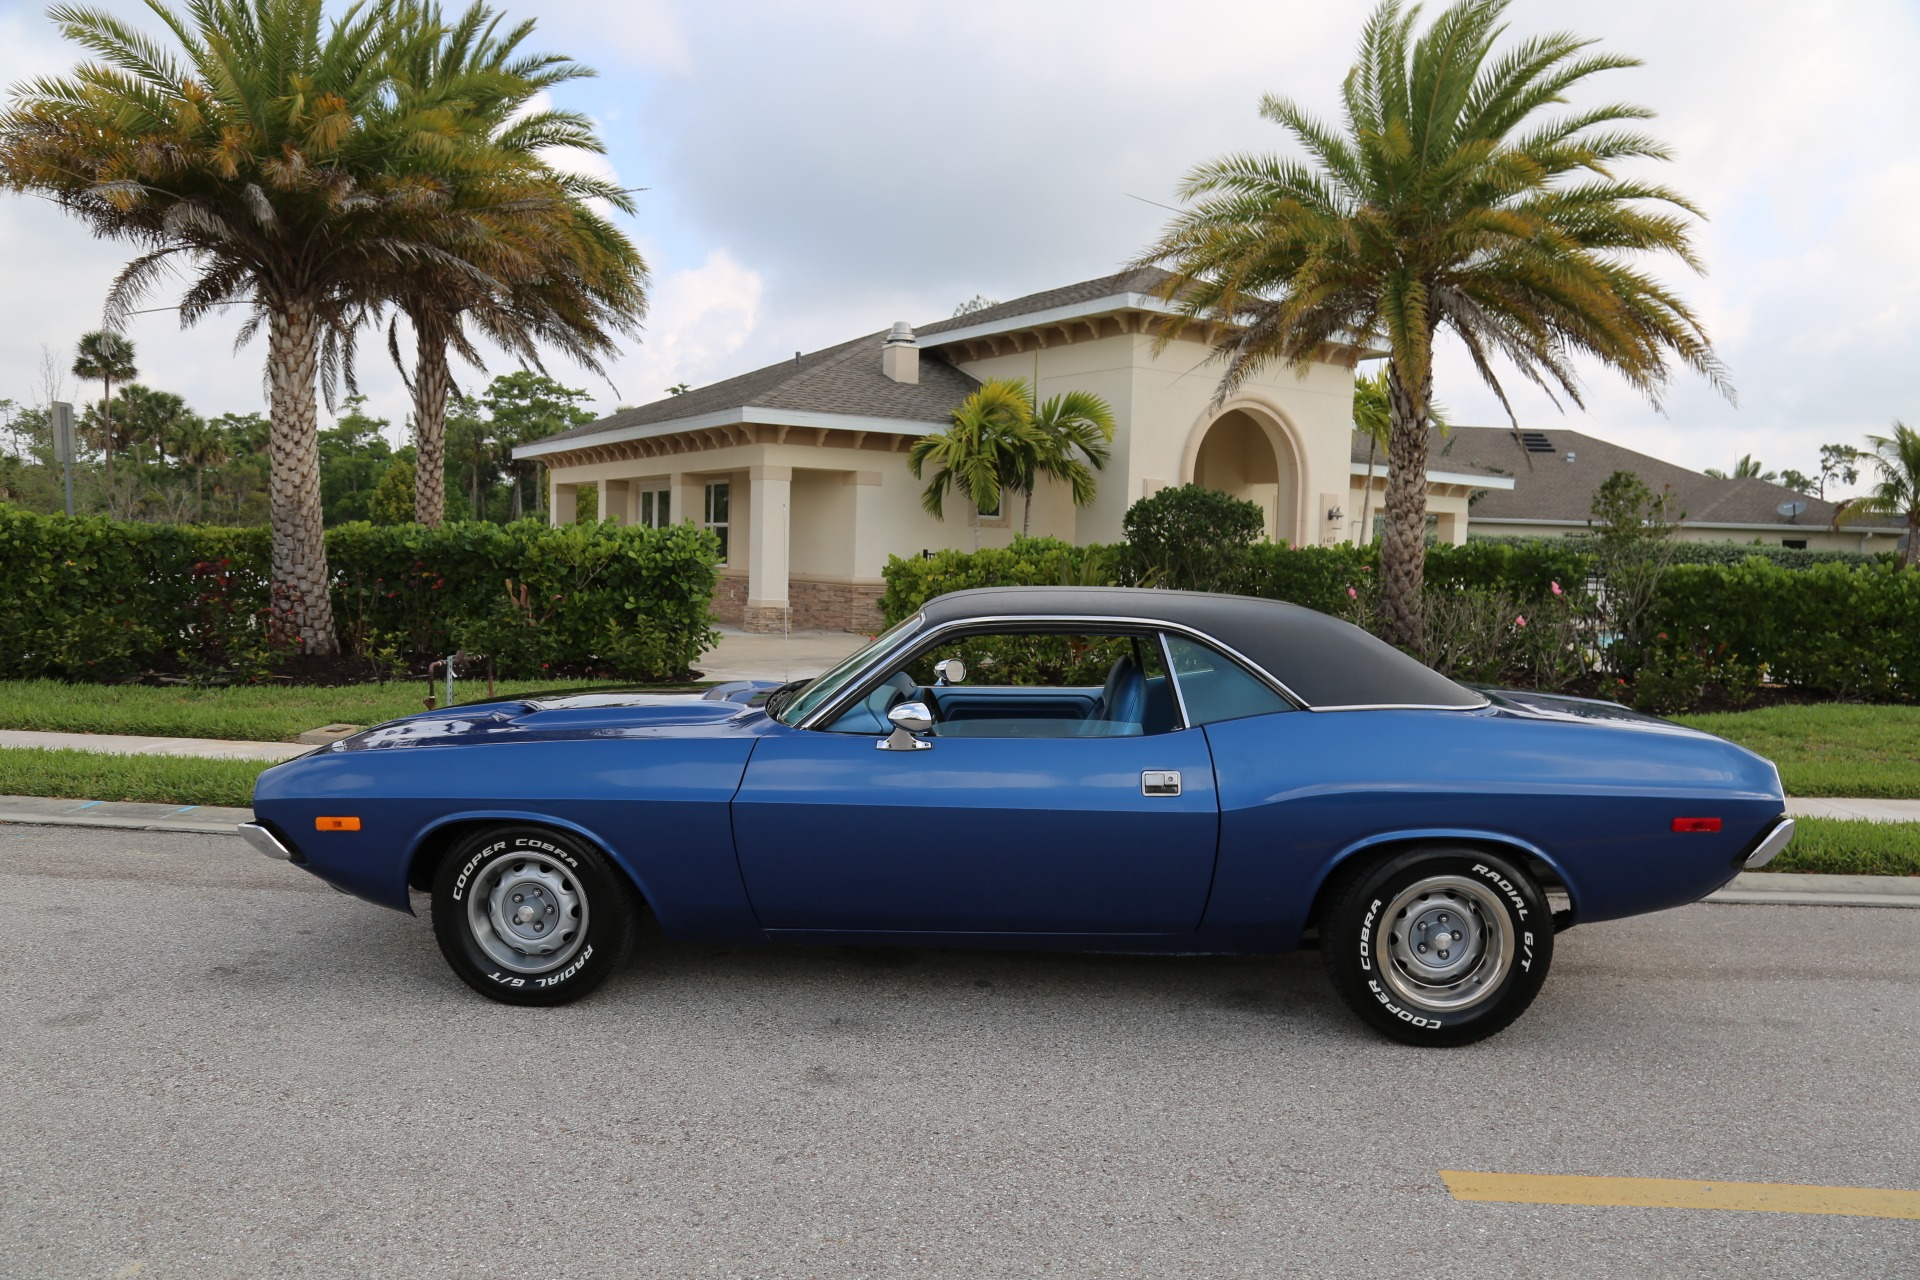 Used 1973 Dodge Challenger 360 V8 Automatic for sale Sold at Muscle Cars for Sale Inc. in Fort Myers FL 33912 6